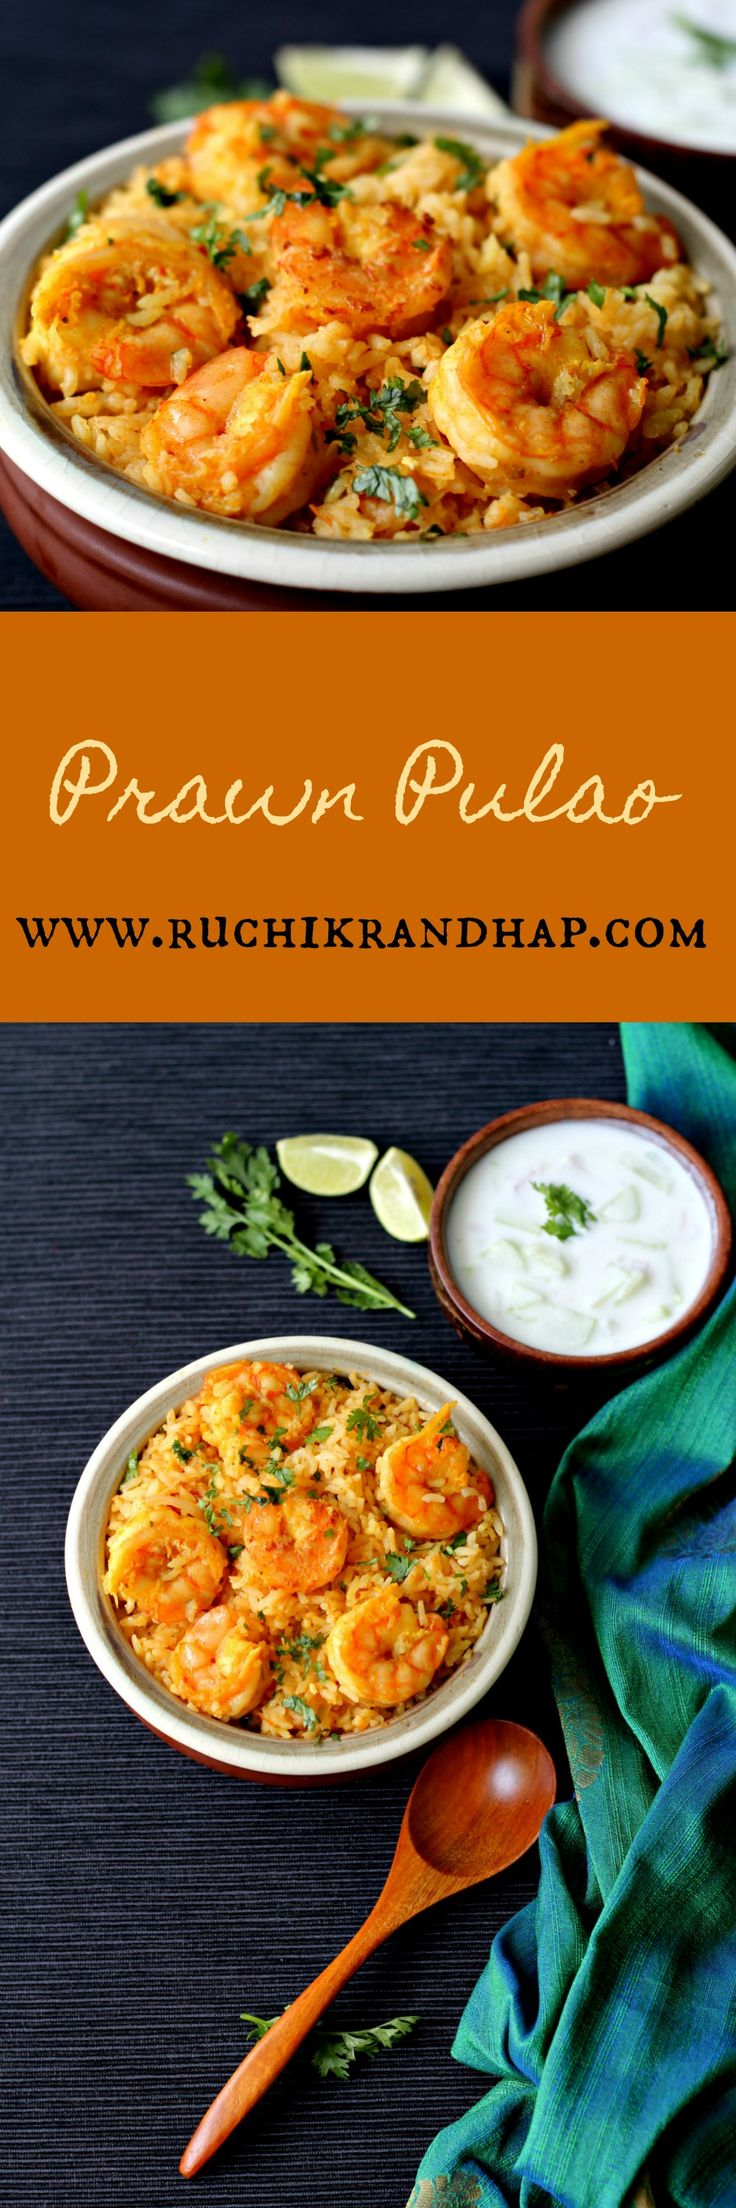 Simple, easy, satisfying ~ this prawn pulao will dazzle everyday or party menu! Get the recipe!